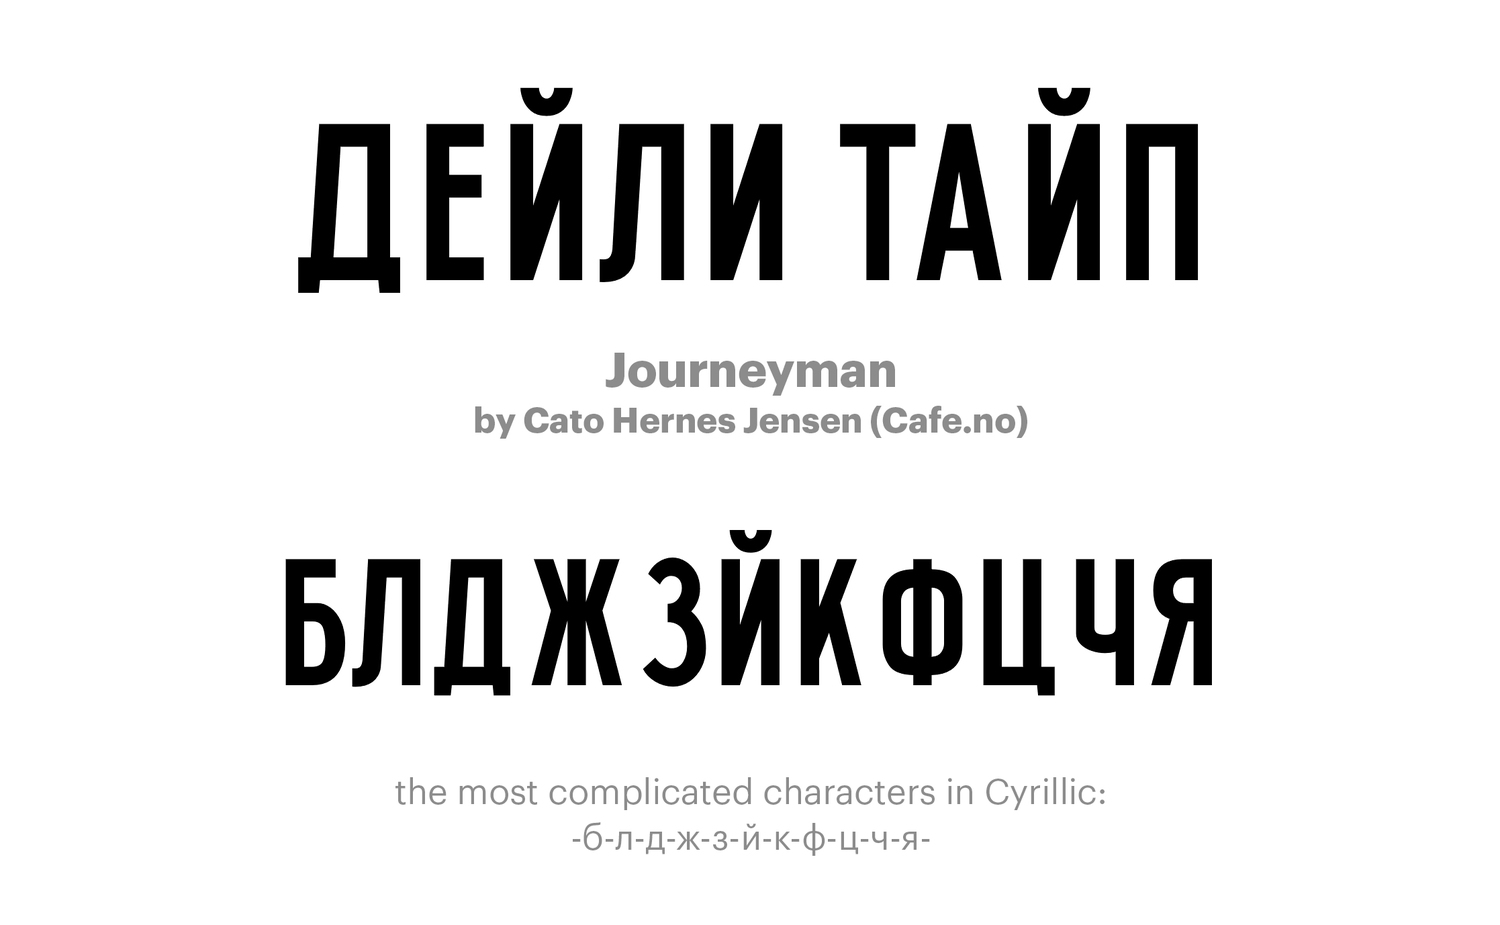 Journeyman-by-Cato-Hernes-Jensen-(Cafe.no)